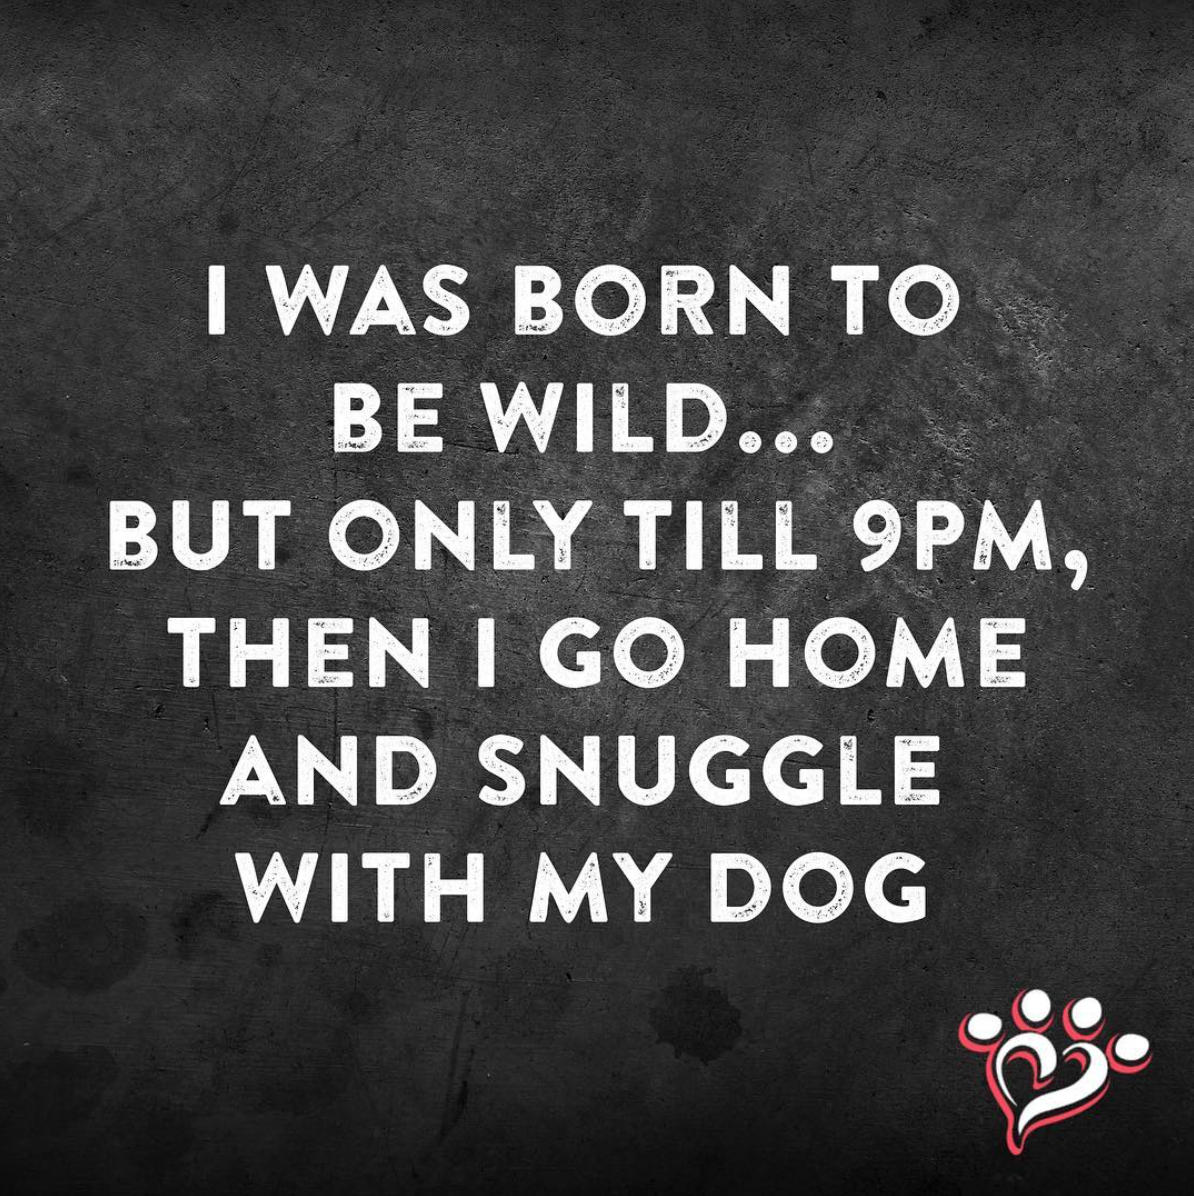 Pin by ashlee reyes on puppy love pinterest dogs dog quotes and